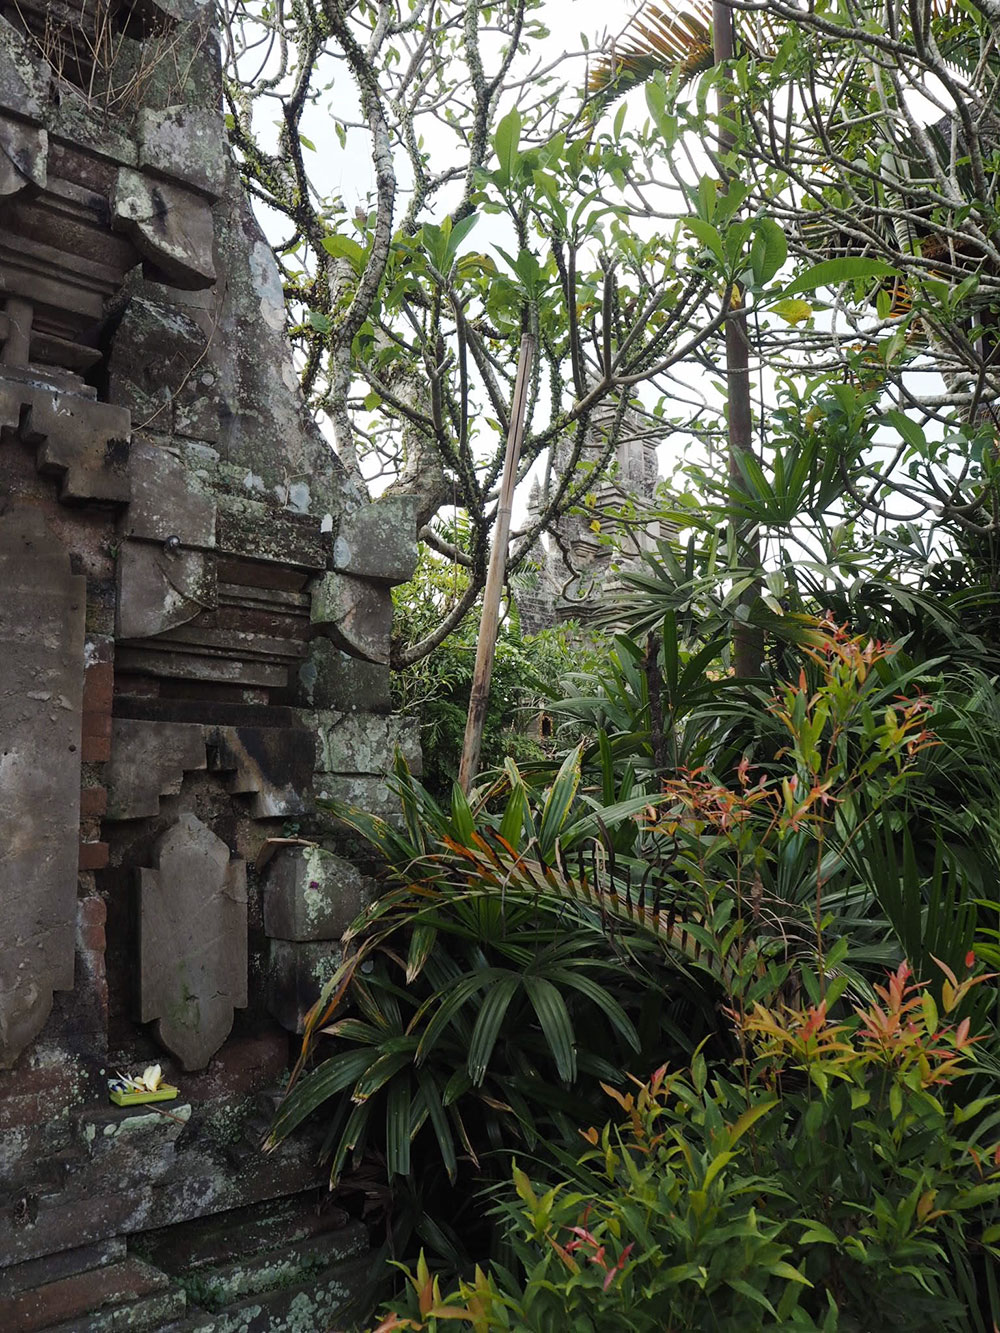 RosyCheeks-Bali-Ubud-Temple-Djungle